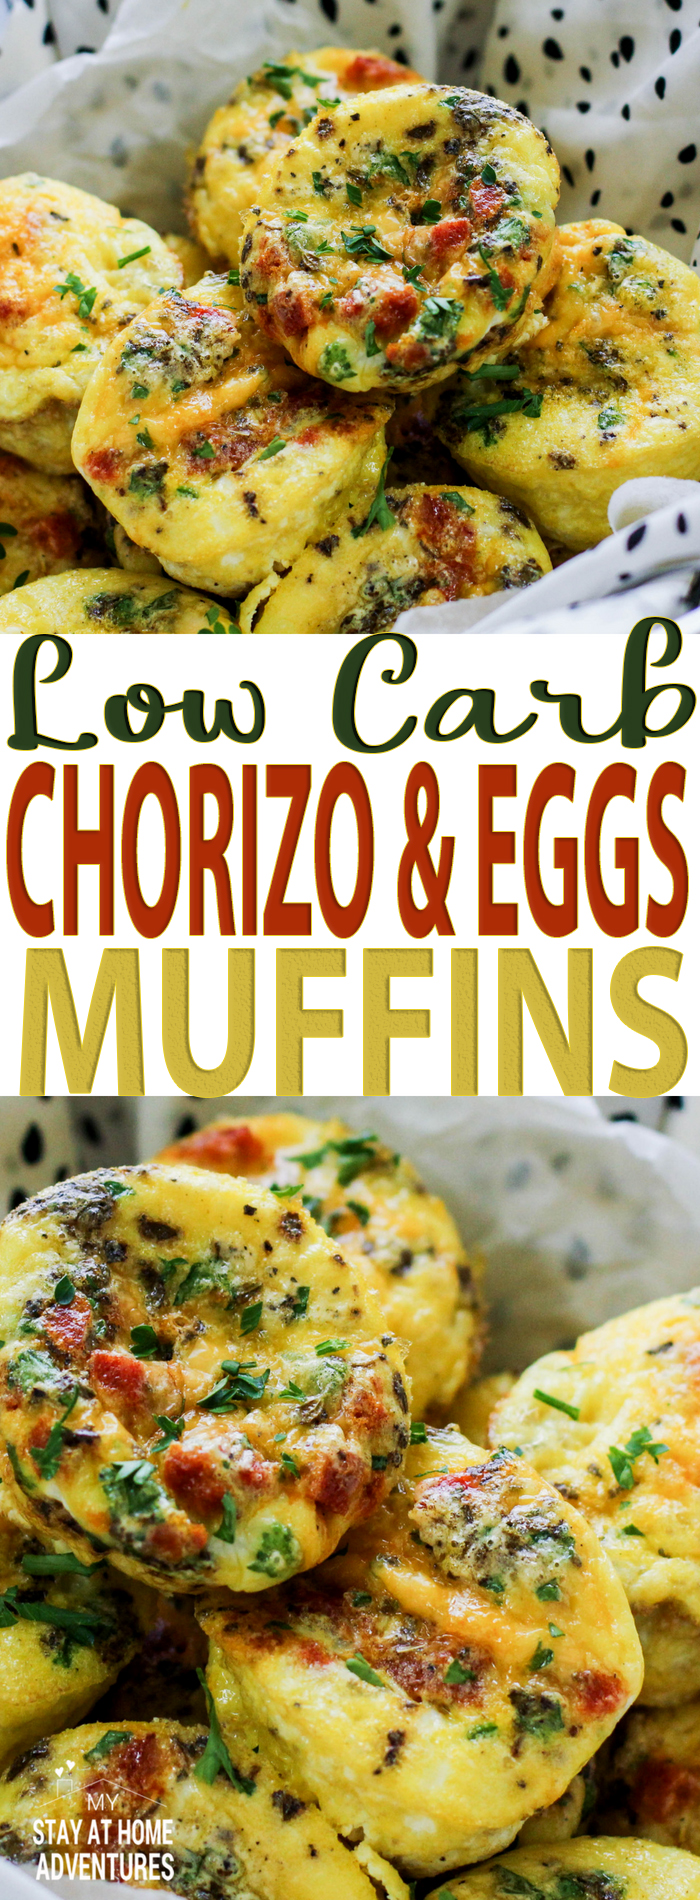 Learn how to create chorizo and eggs muffins that are full of flavor and yes, low carb friendly. This egg and chorizo recipe is also freezable to eat later!